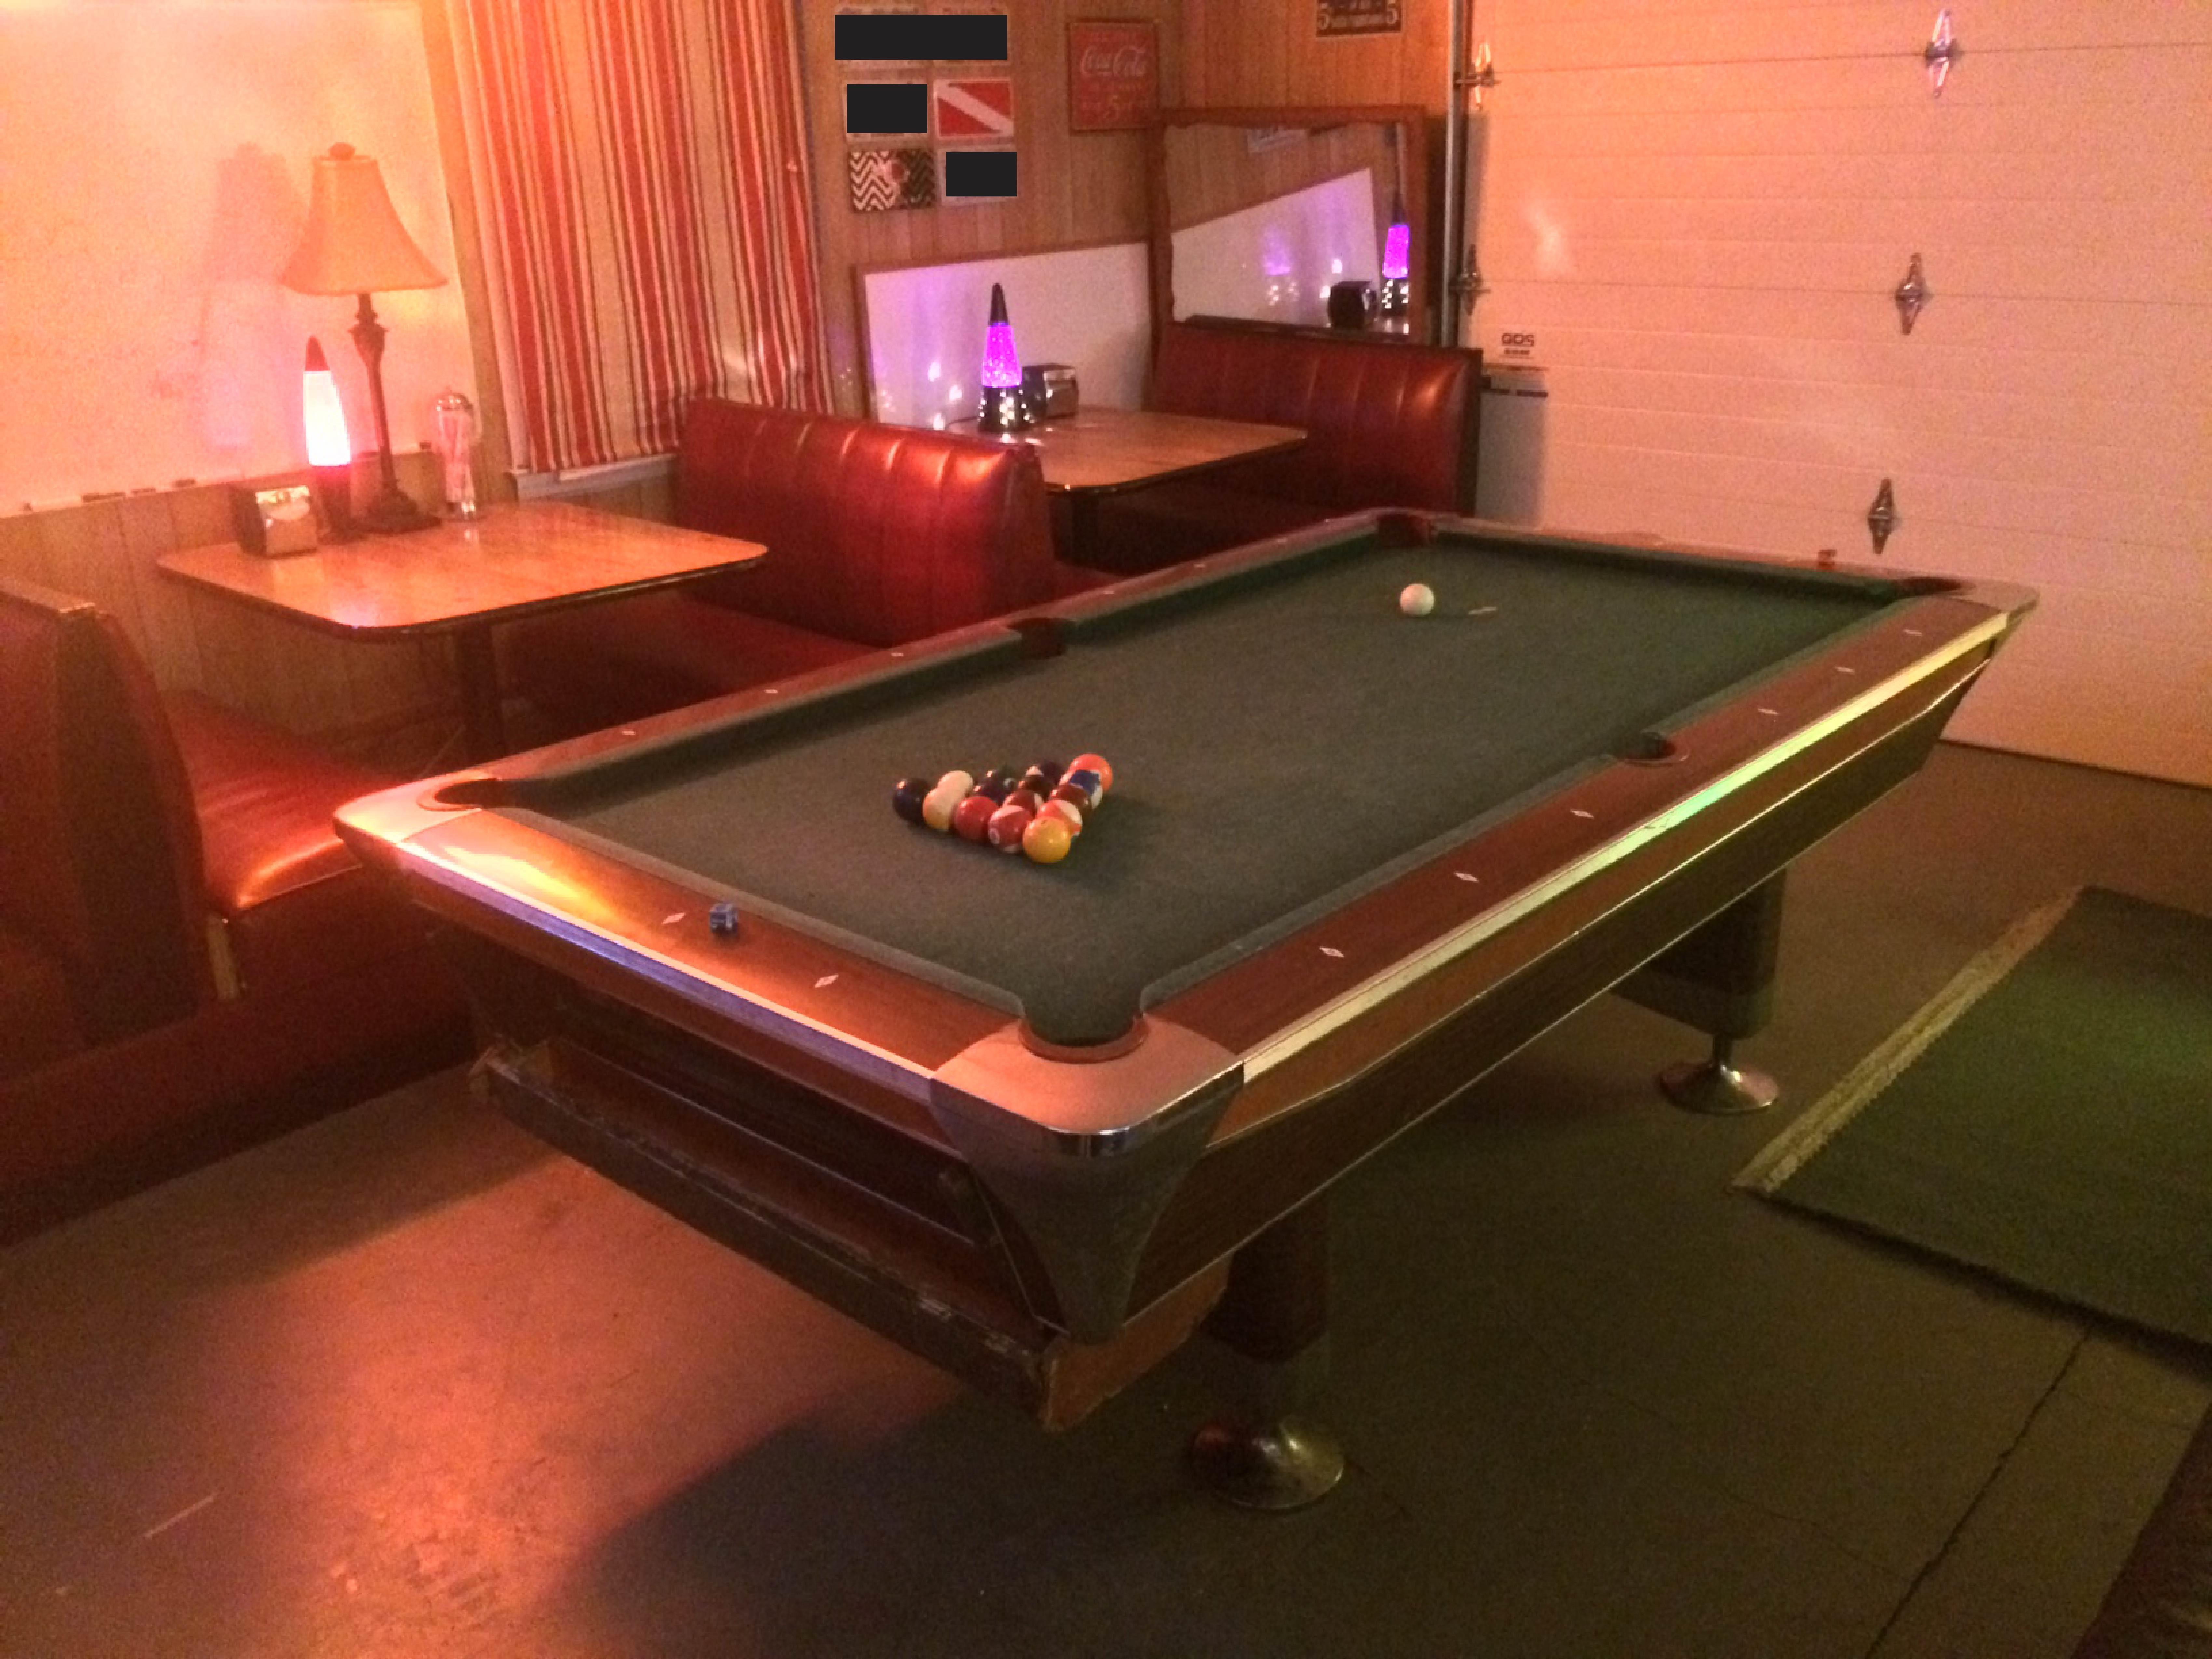 Fischer Empress Ninety Two Cushion Profile - How to install pool table felt